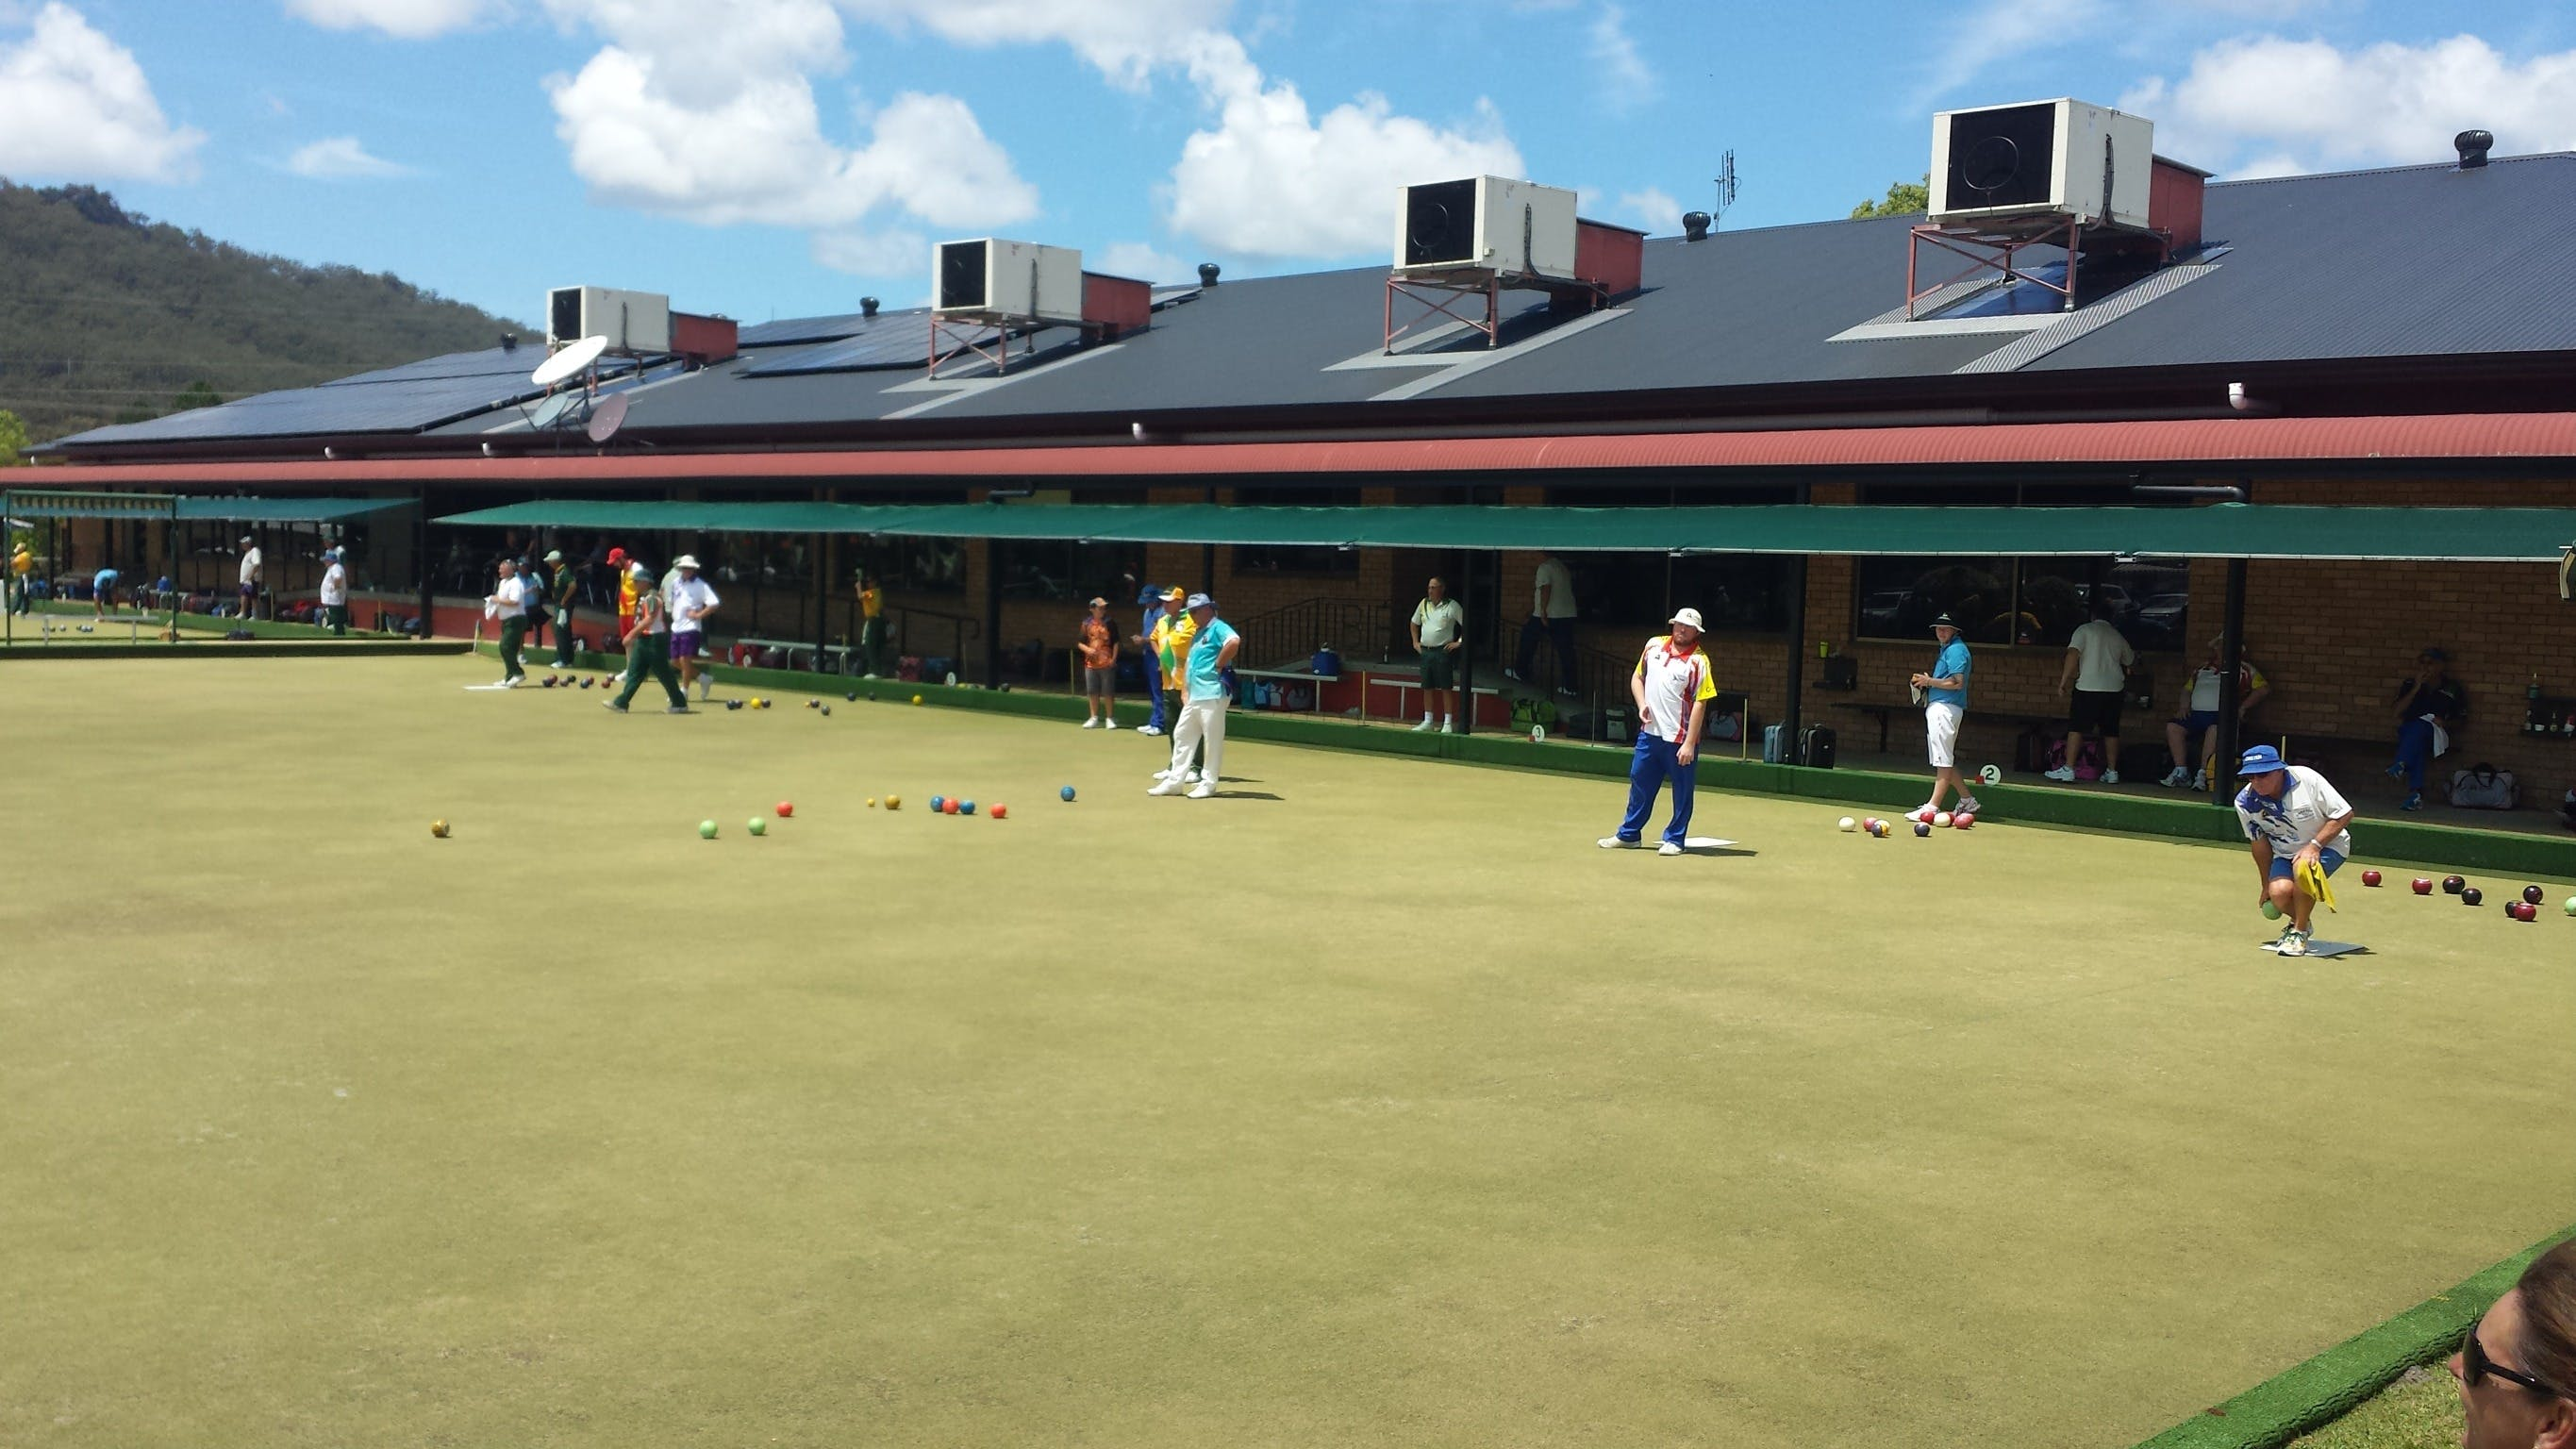 Bulahdelah Bowling Club - Australia Accommodation